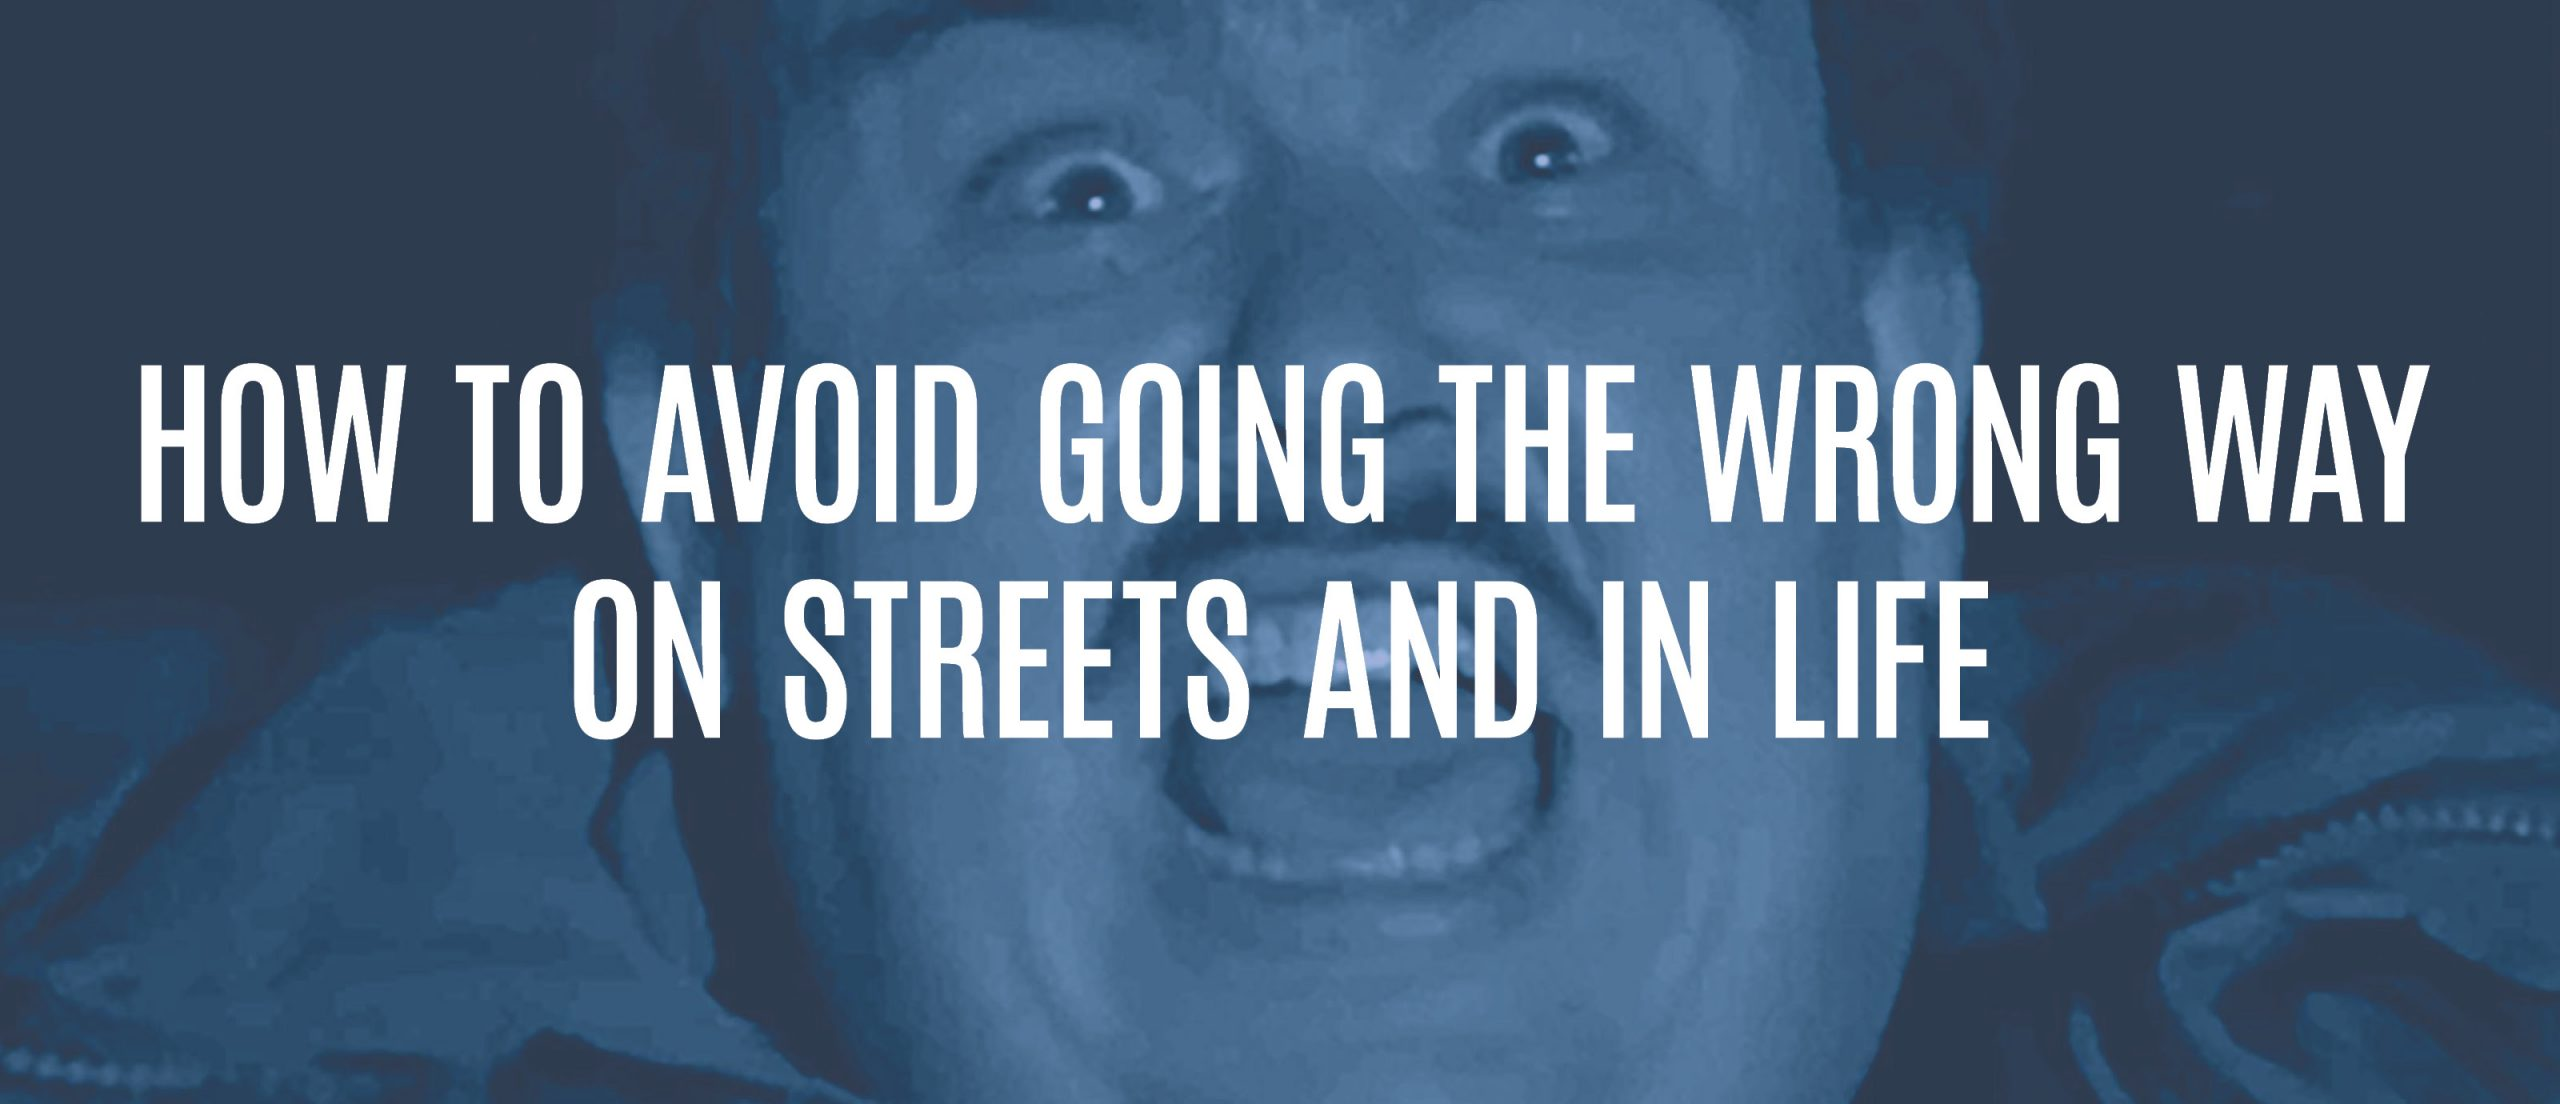 Blog title: How to avoid going the wrong way on streets and in life